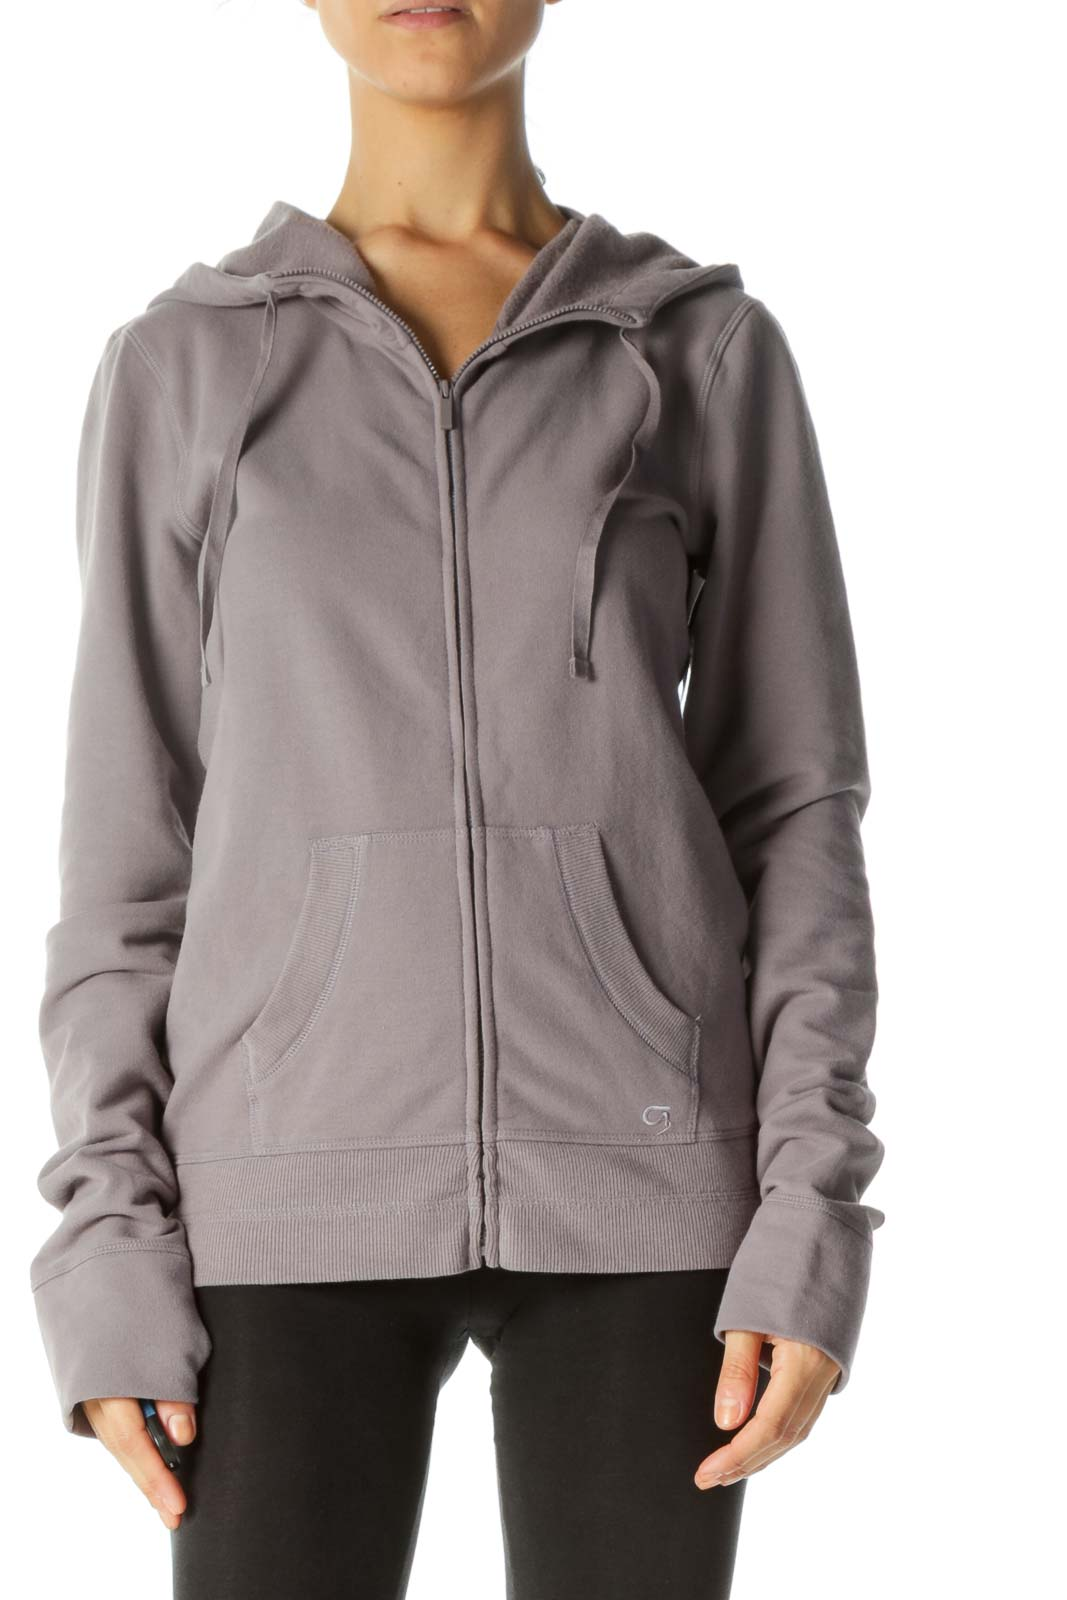 Purple Zipped Hooded Sports Jacket